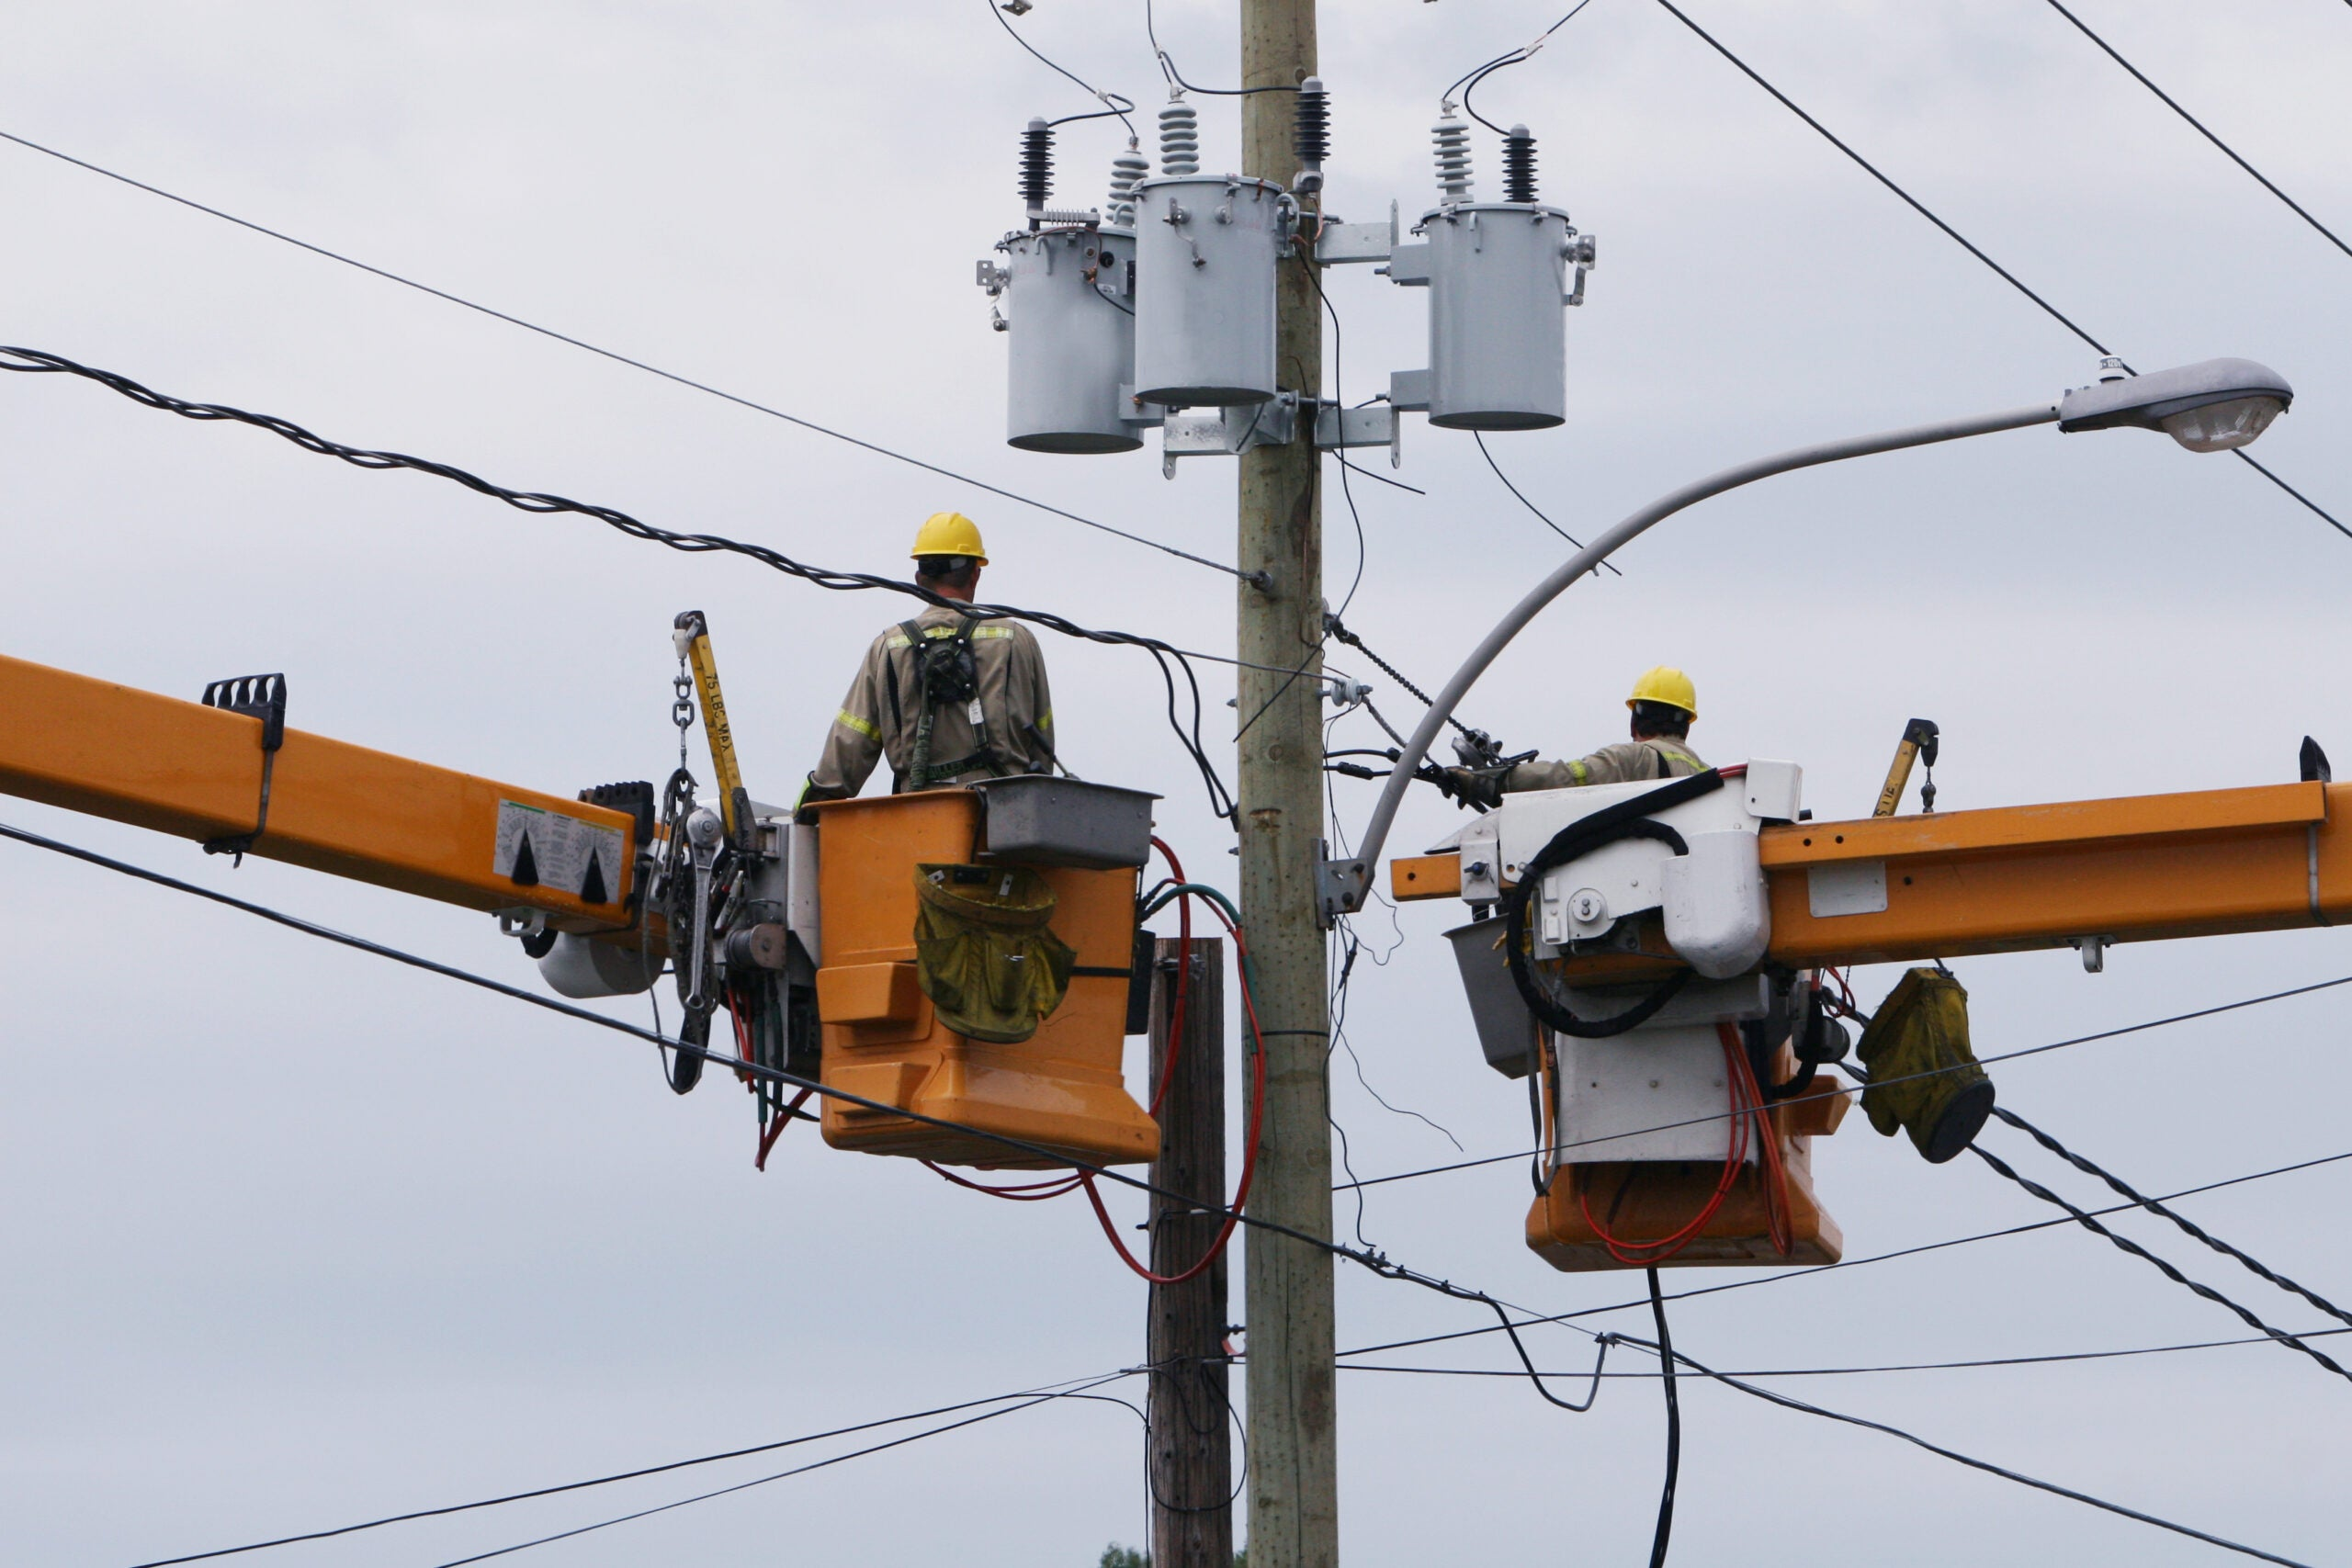 Safety.com's Guide to Staying Safe During California's Power Shutdowns